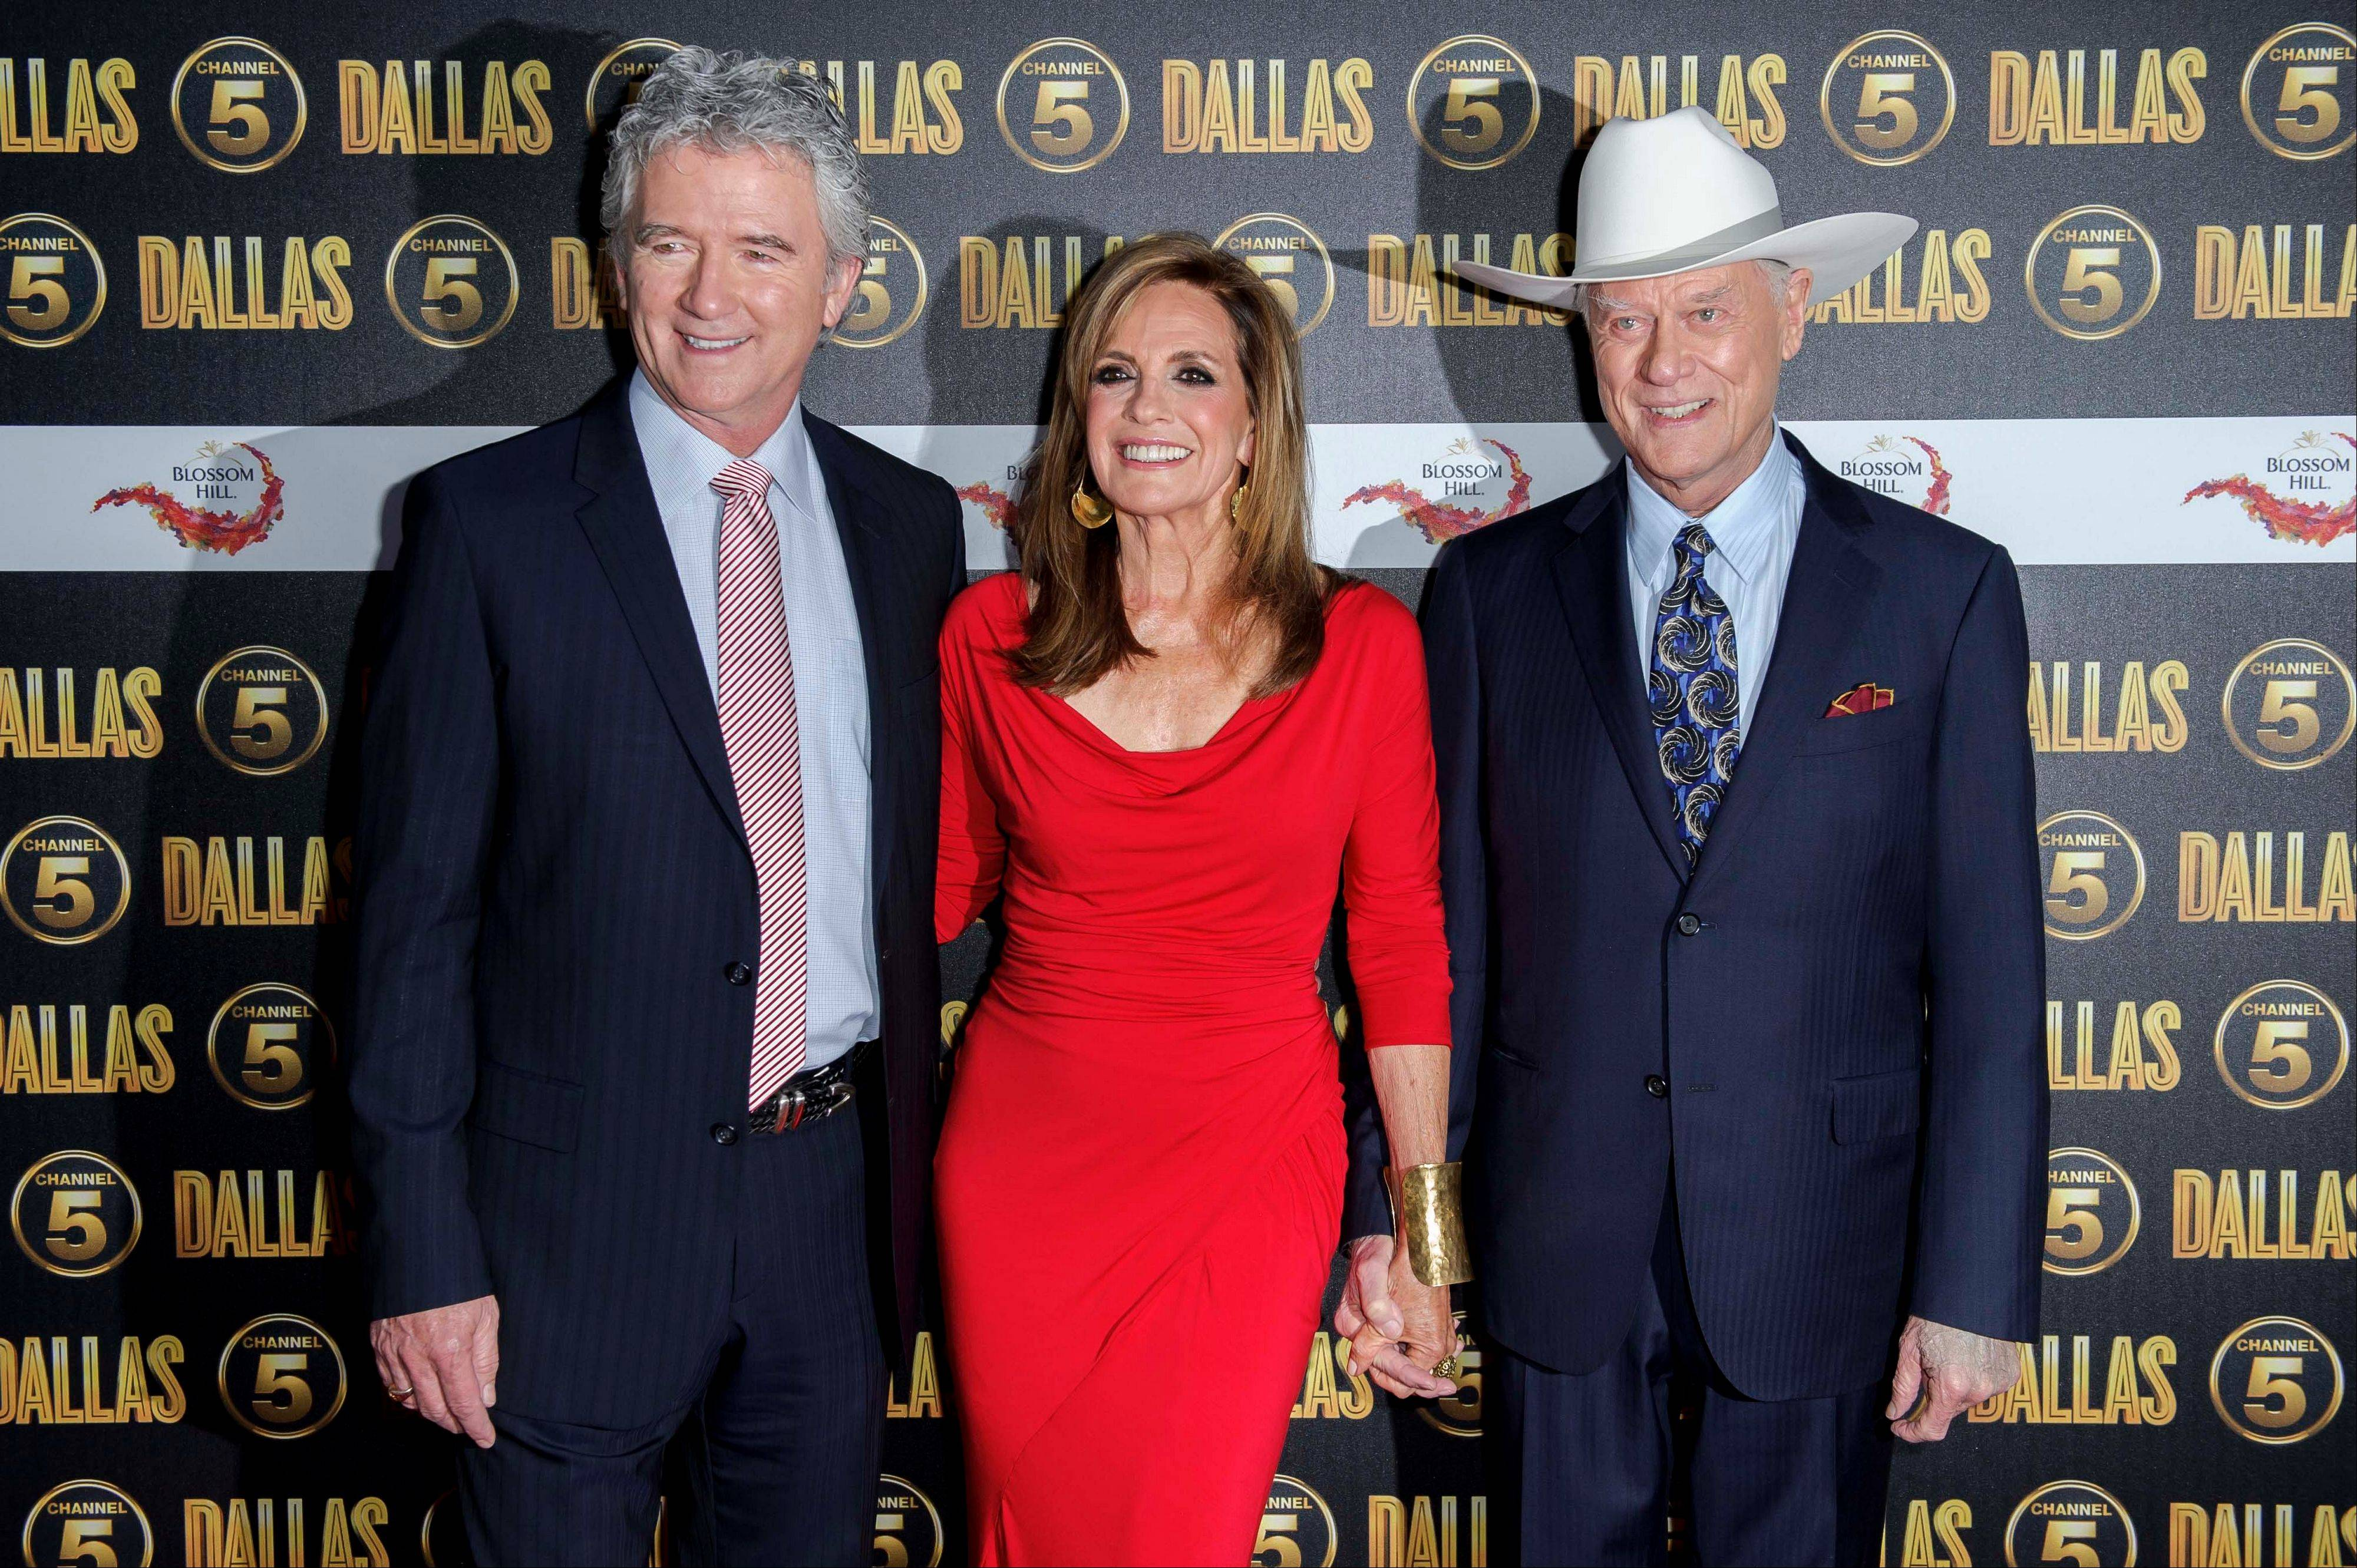 U.S actors Patrick Duffy, Linda Gray and Larry Hagman arrive for the Dallas launch party at a central London venue, Tuesday.